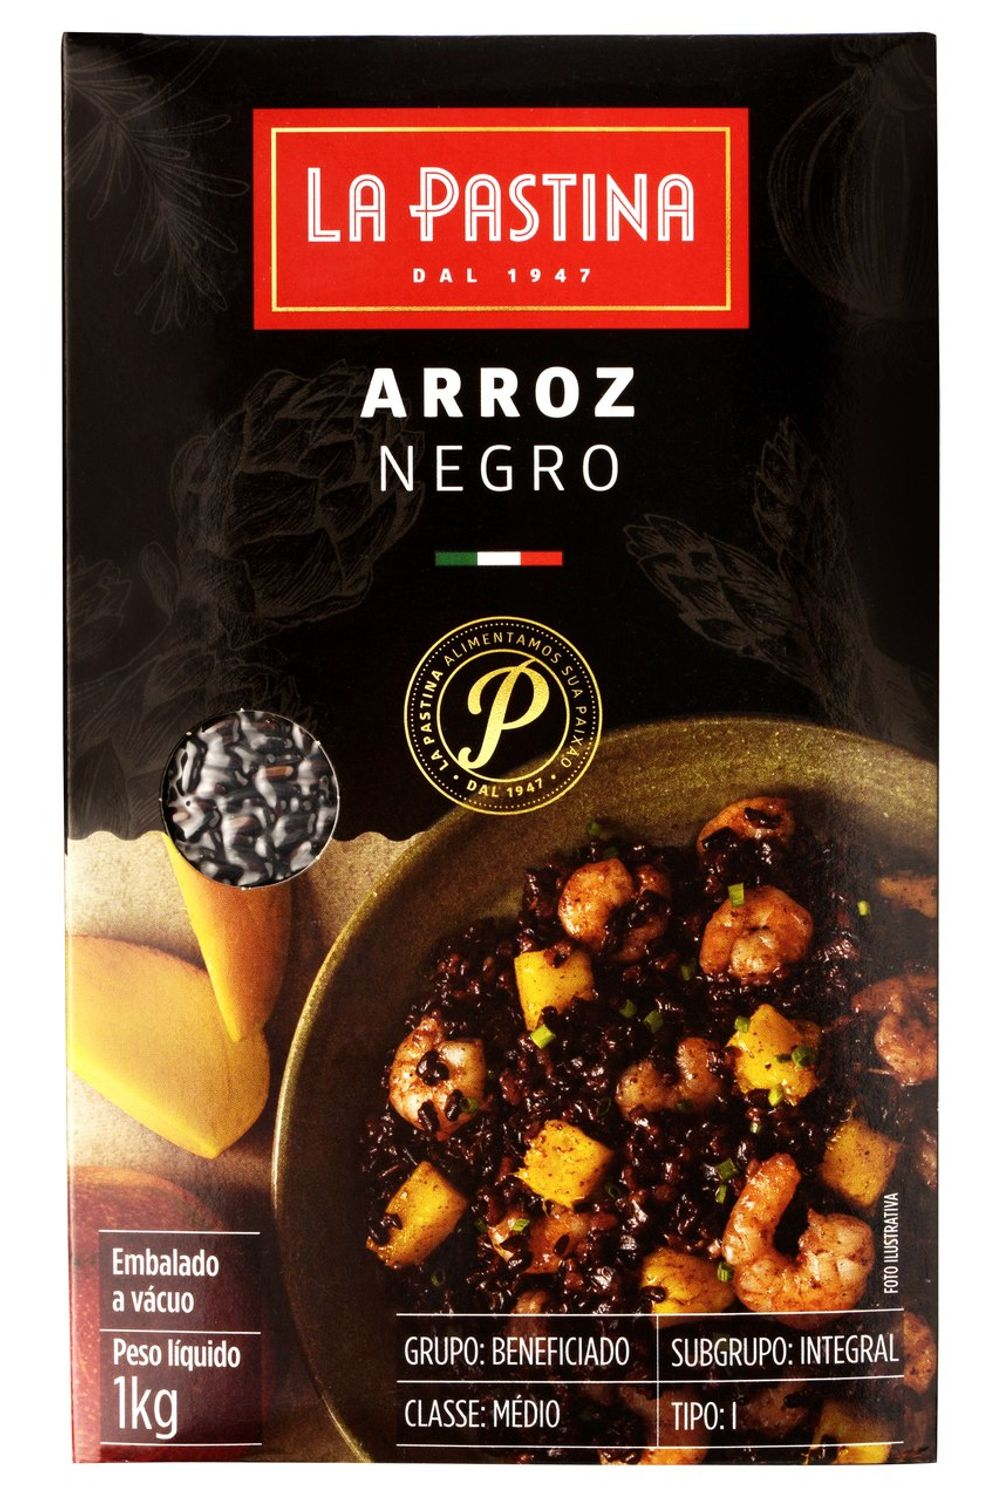 012250-ARROZ-IT-LA-PASTINA-NEGRO-1KG_Easy-Resize.com